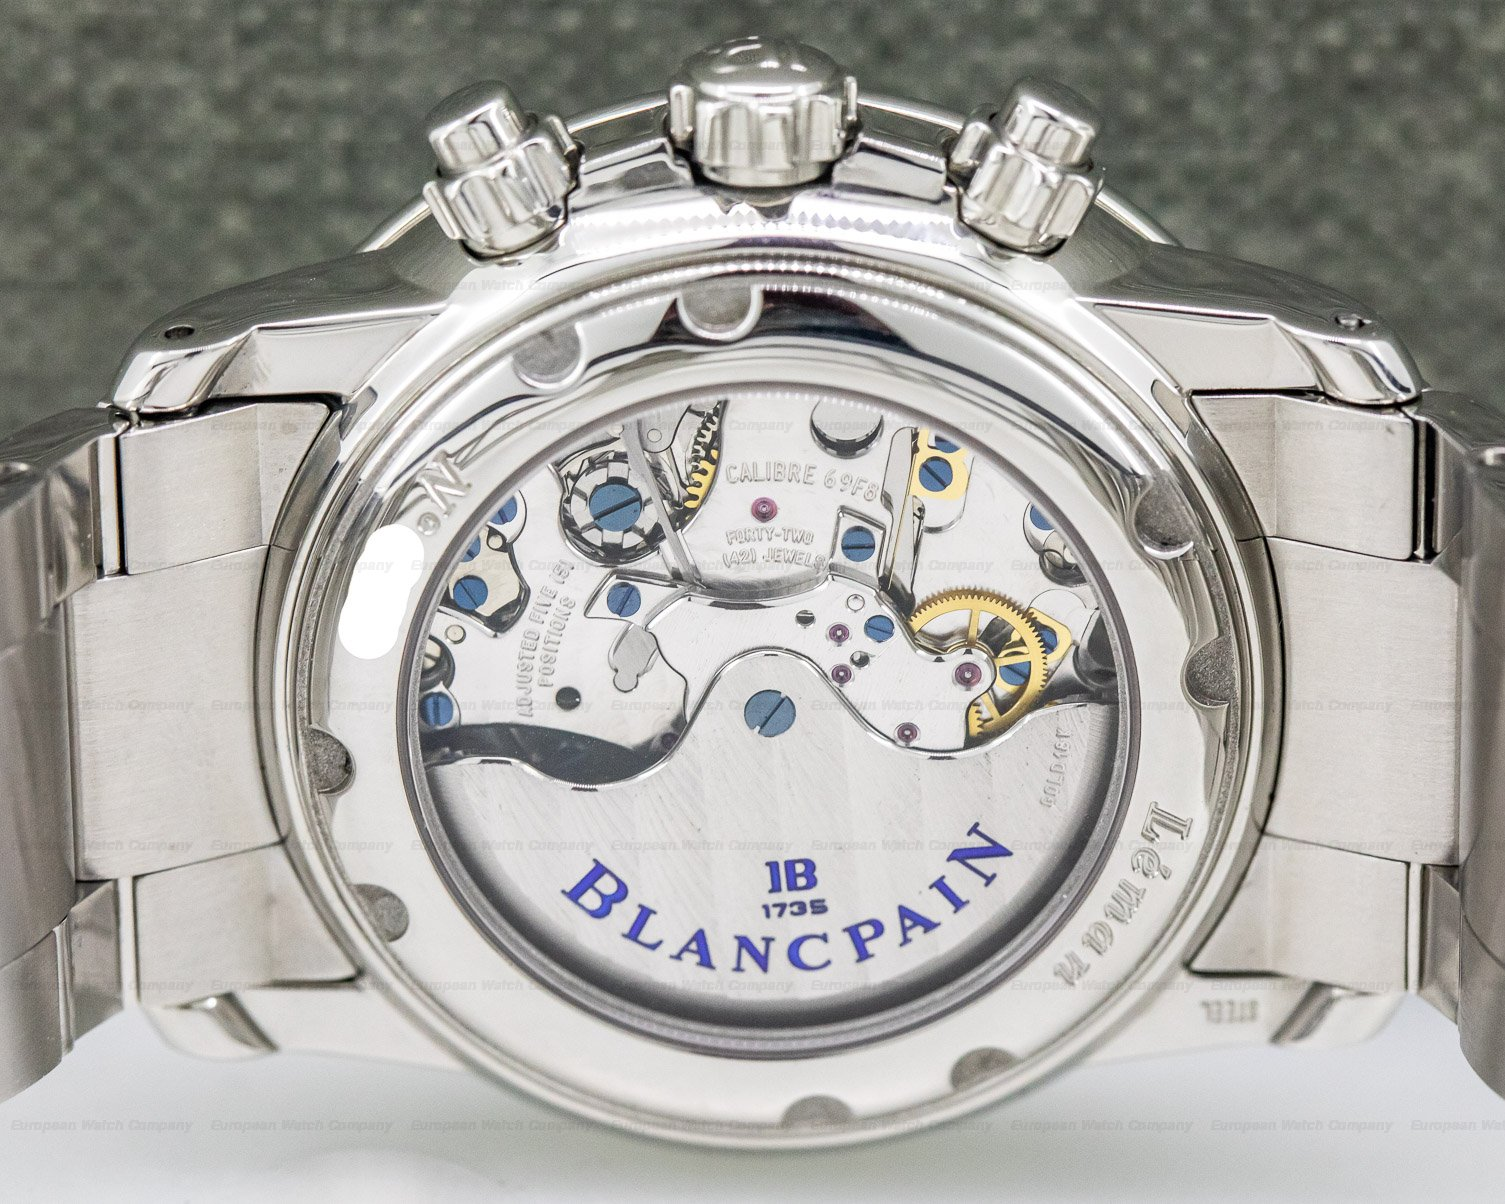 Blancpain 2885F-1130-71 Flyback Chronograph Big Date SS / SS